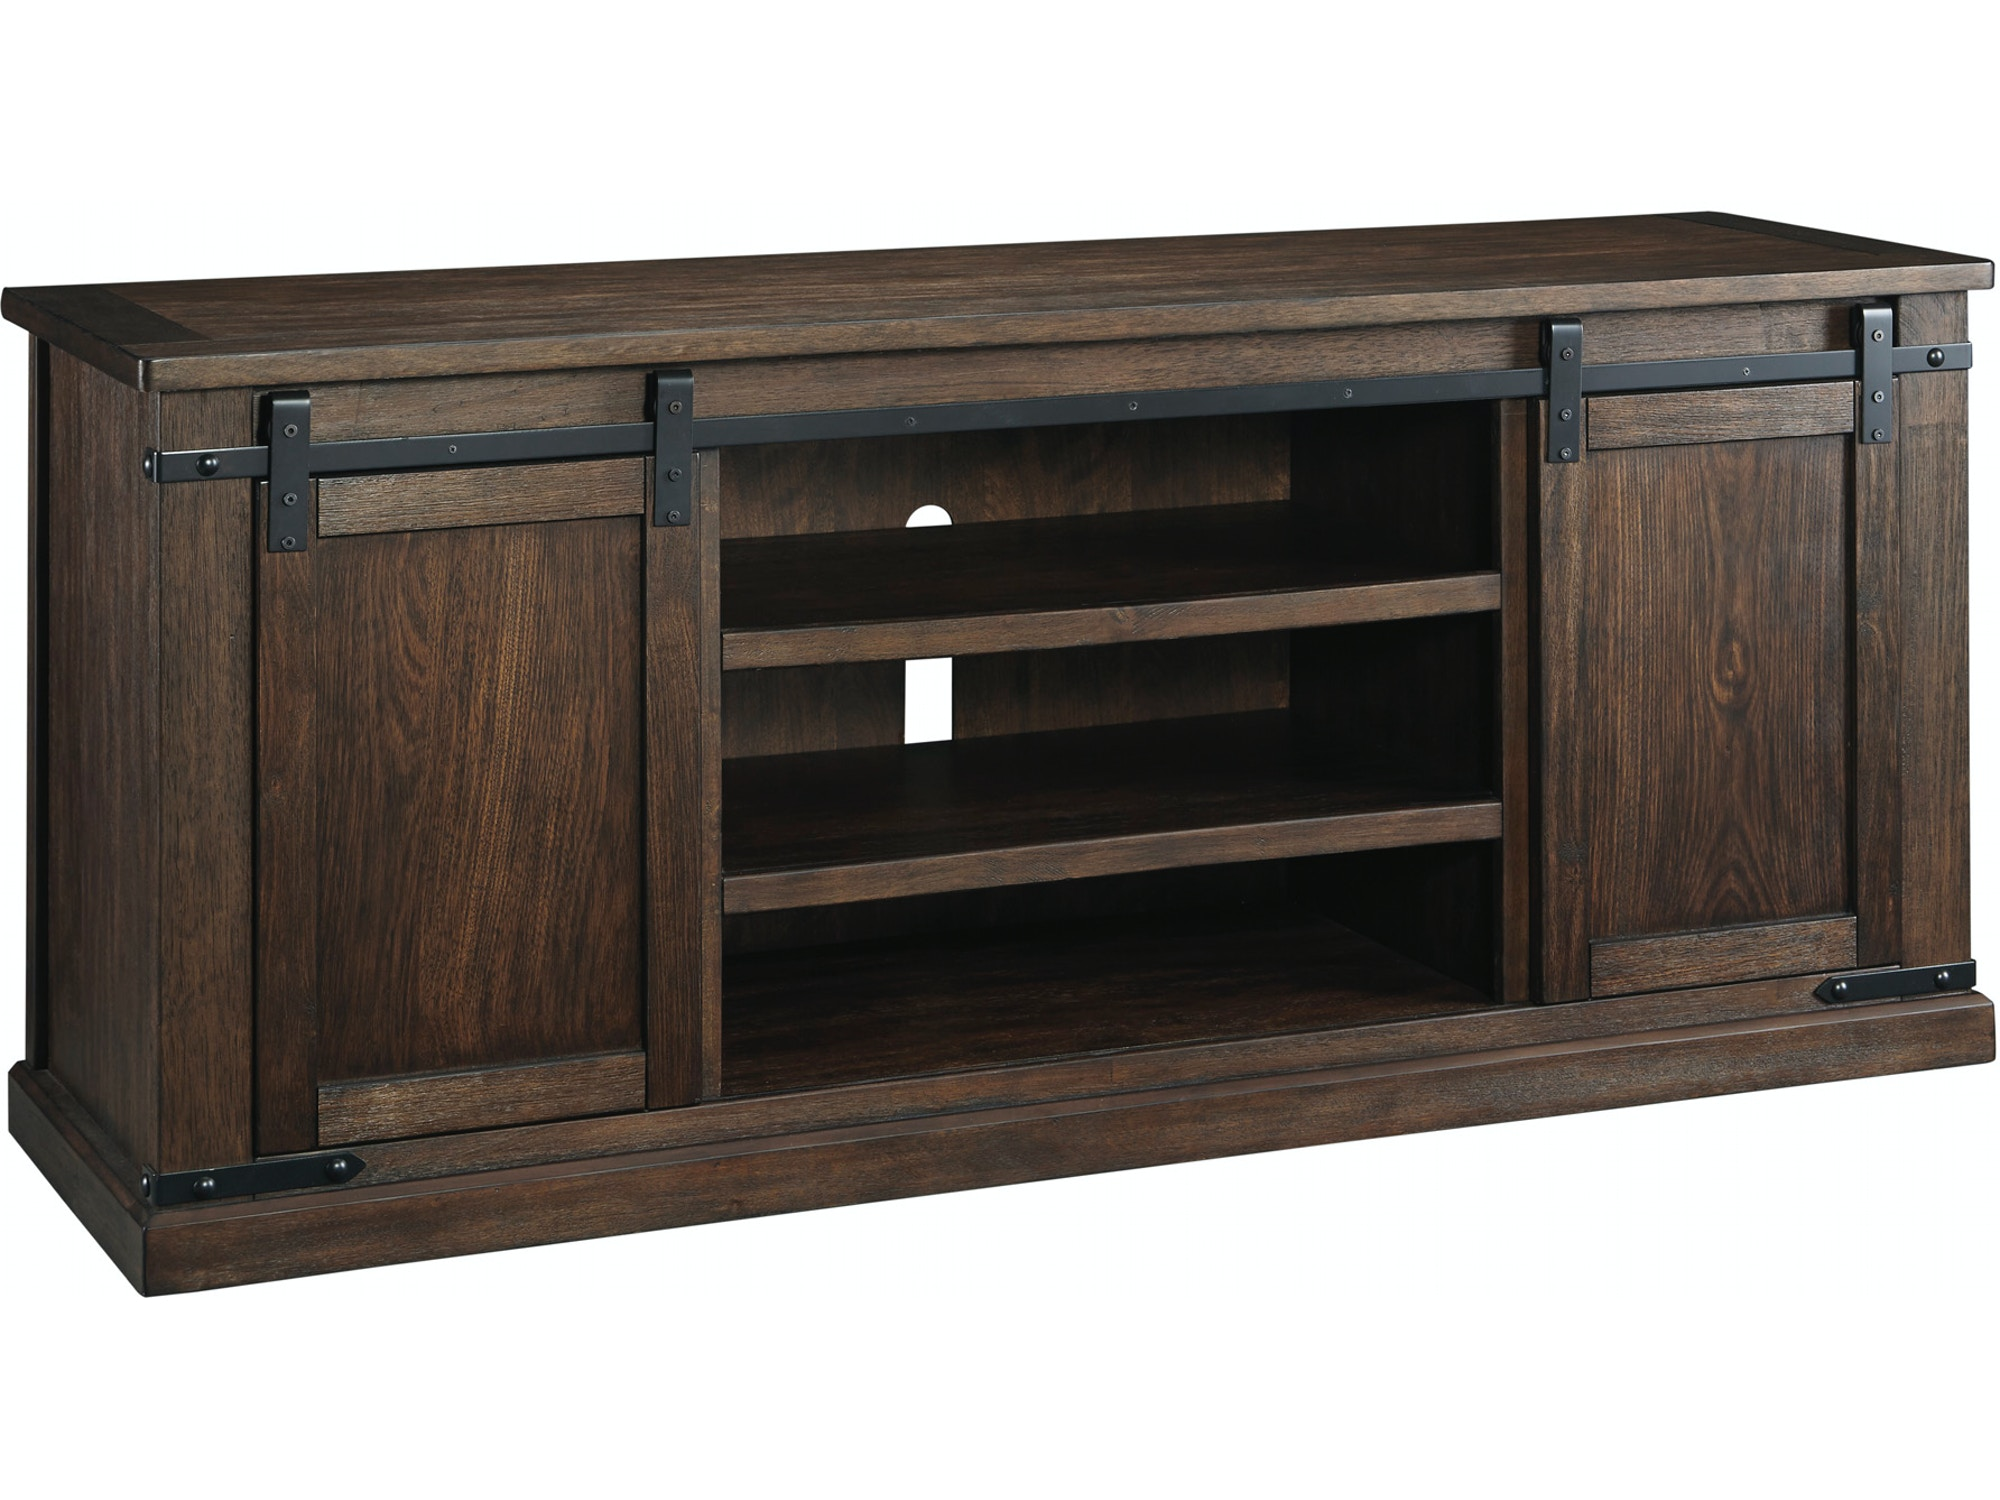 Budmore TV Stand - XL 055731